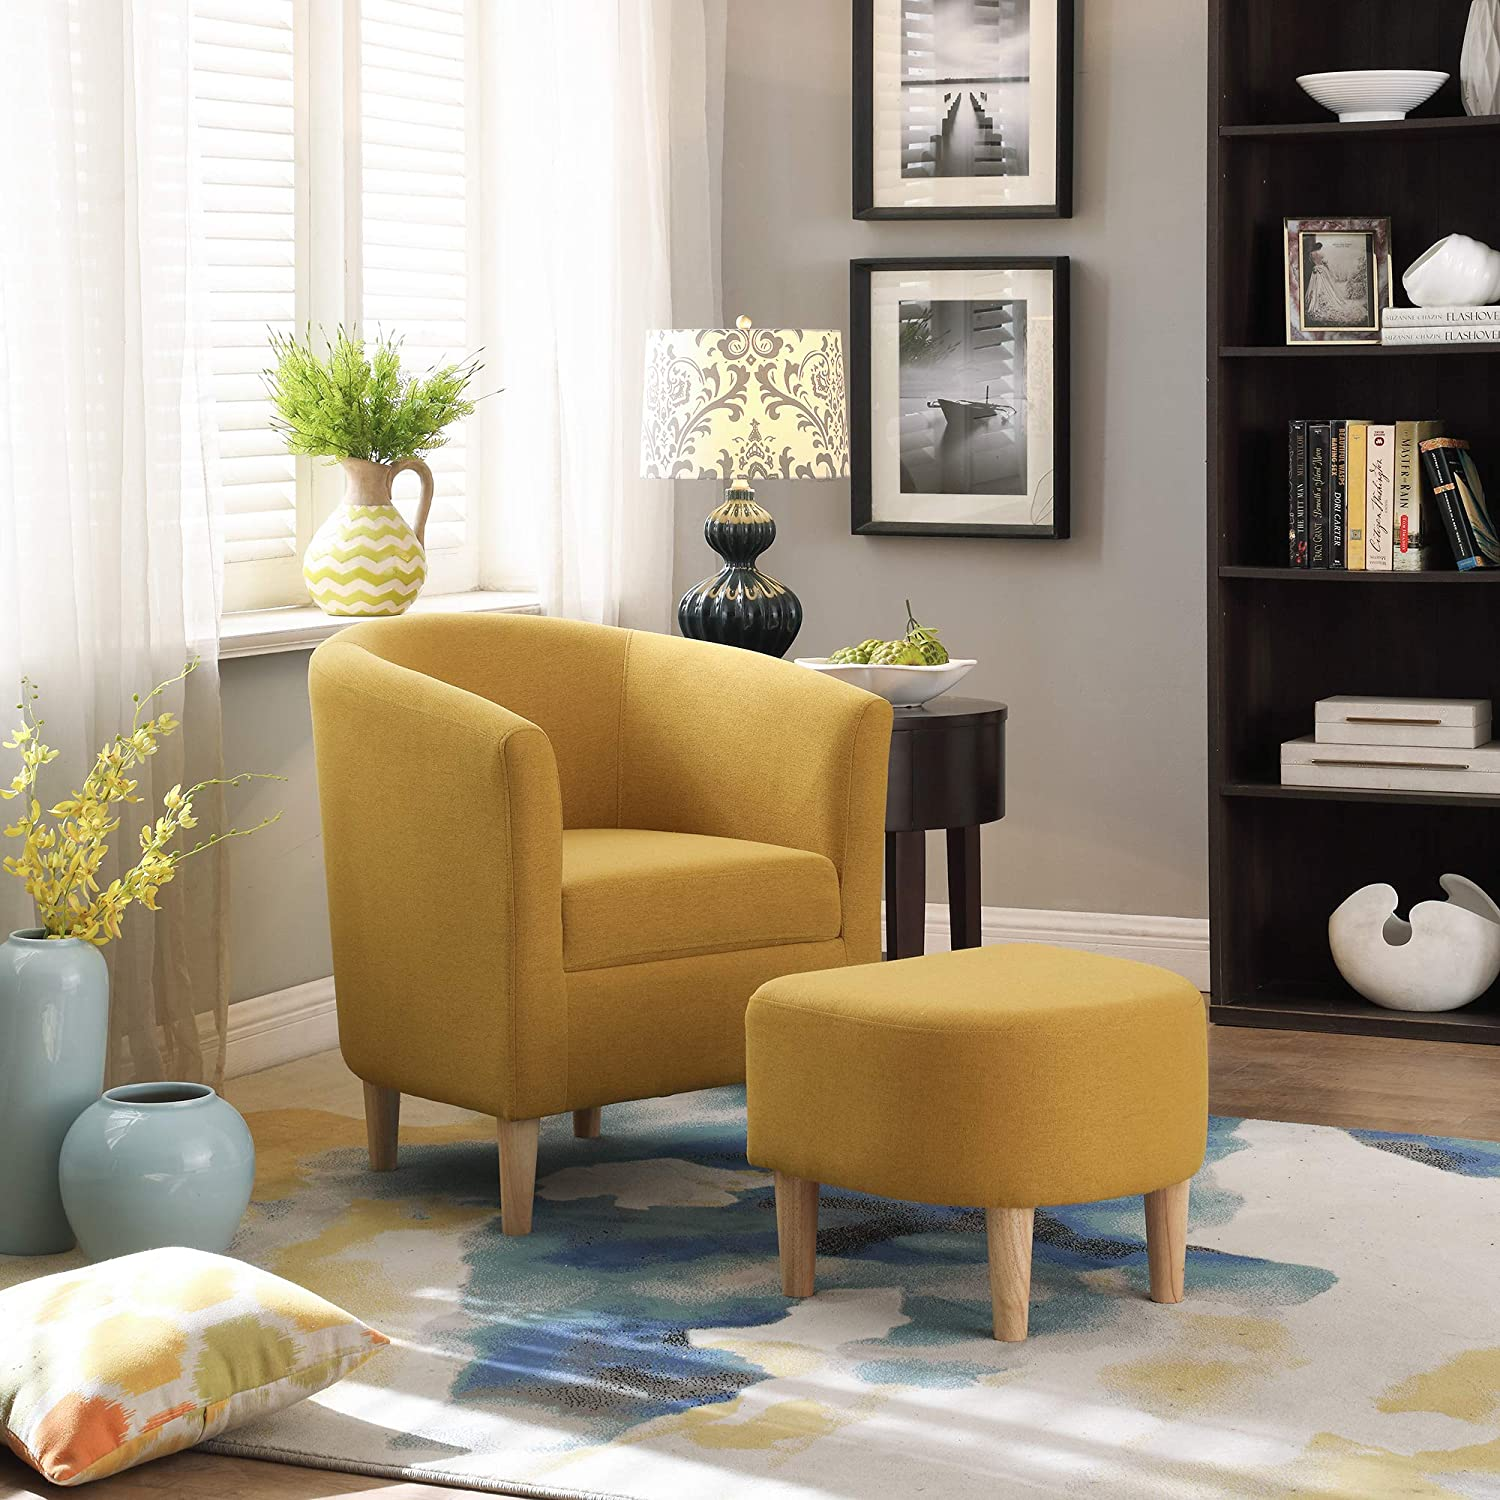 DAZONE Modern Accent Chair, Upholstered Arm Chair Linen Fabric Single Sofa Chair with Ottoman Foot Rest Mustard Yellow: Kitchen & Dining